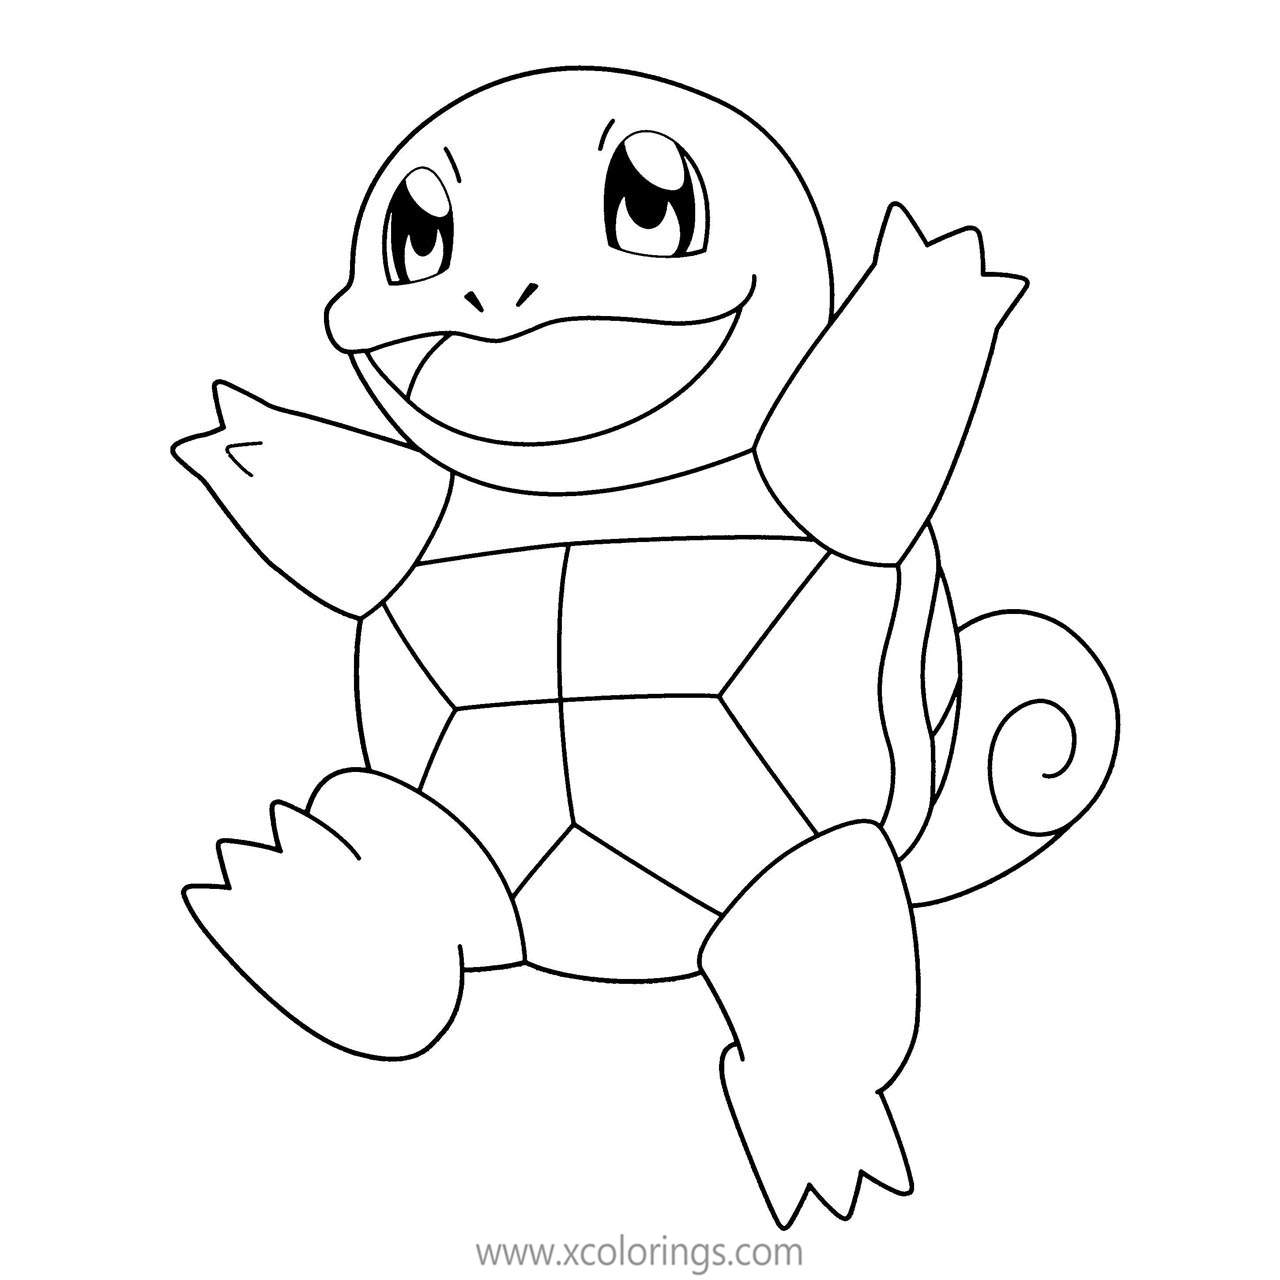 Mega Pokemon Squirtle Coloring Pages Xcolorings Com